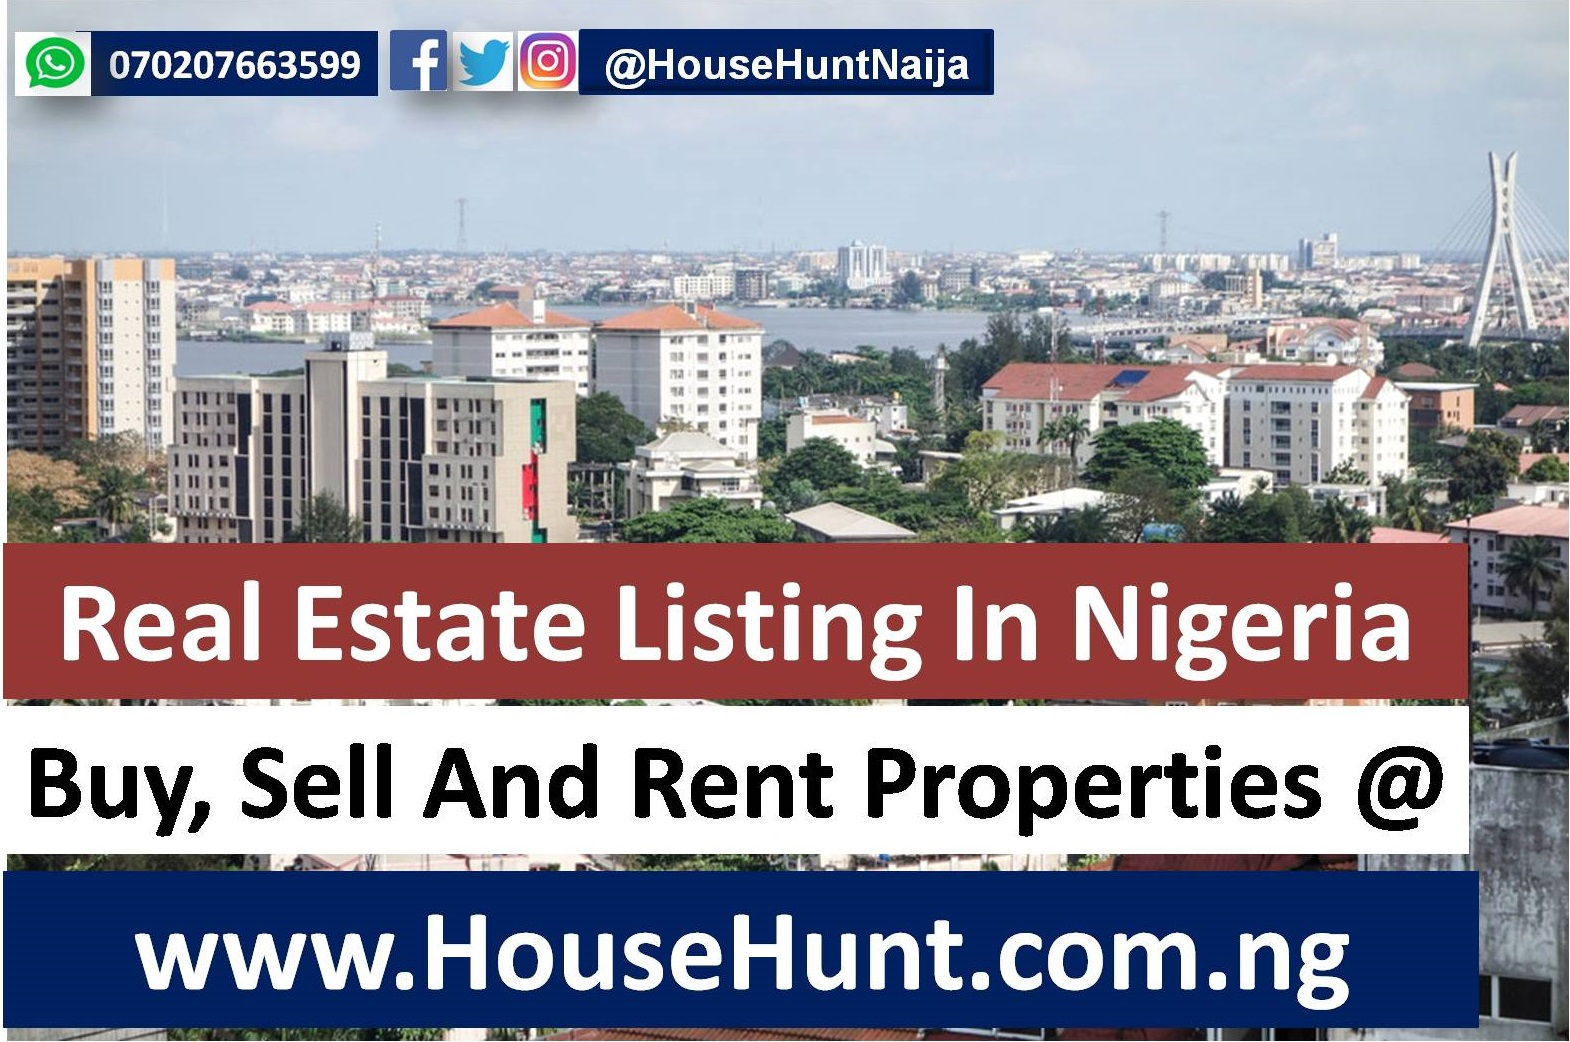 Buy, Sell And Rent Properties At HouseHunt Nigeria